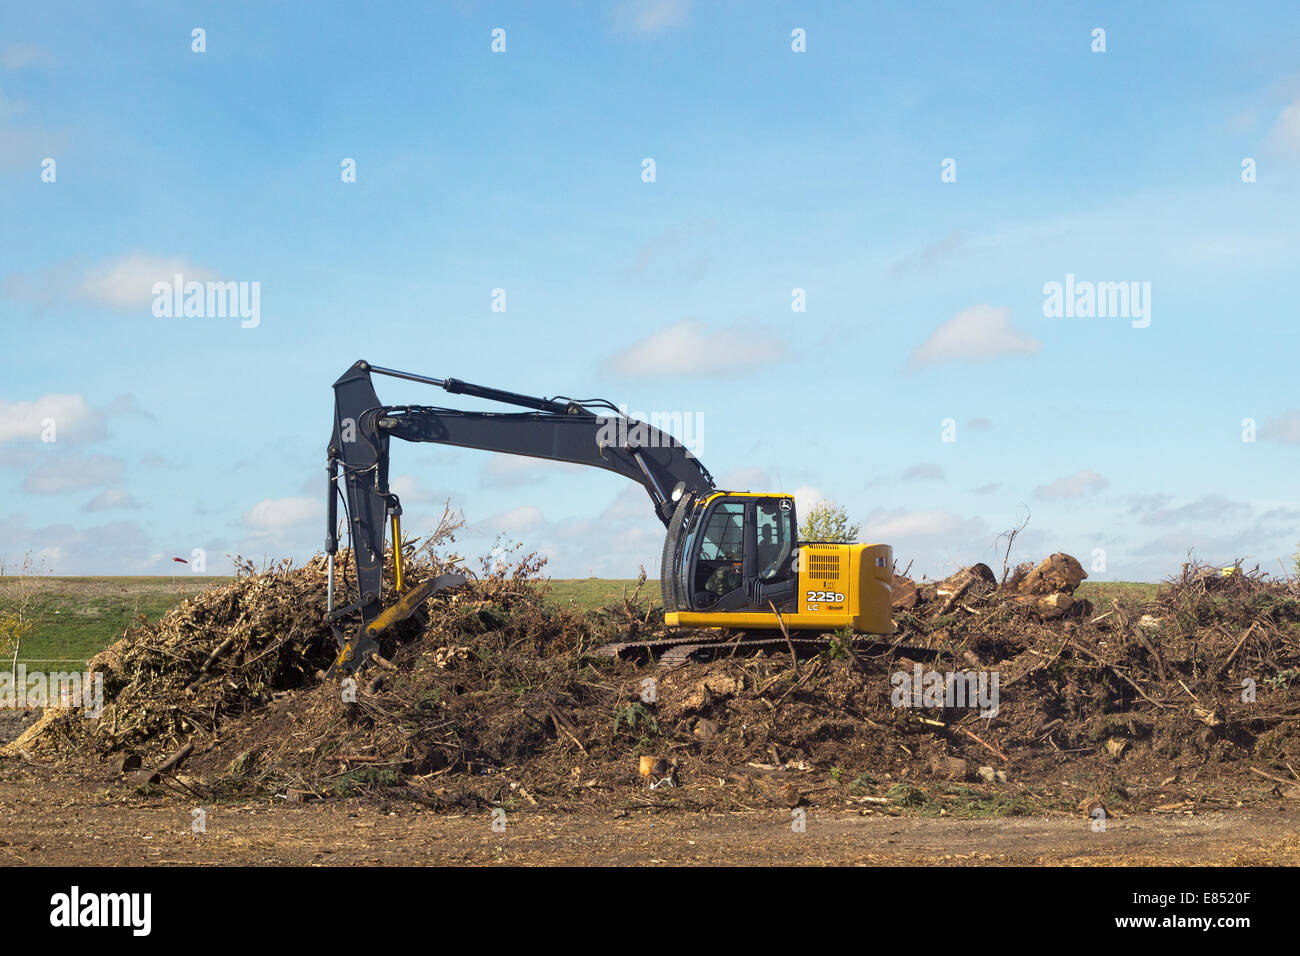 windrow composting of trees for mulch at shepard waste management stock photo 73870063 alamy. Black Bedroom Furniture Sets. Home Design Ideas